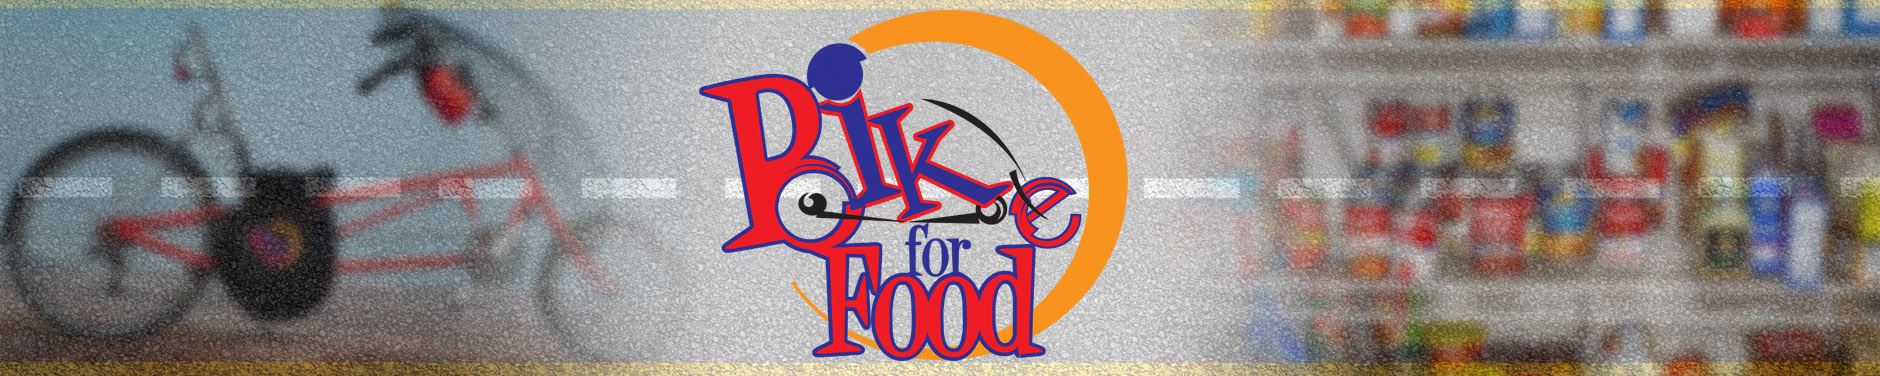 Bike For Food Pantries